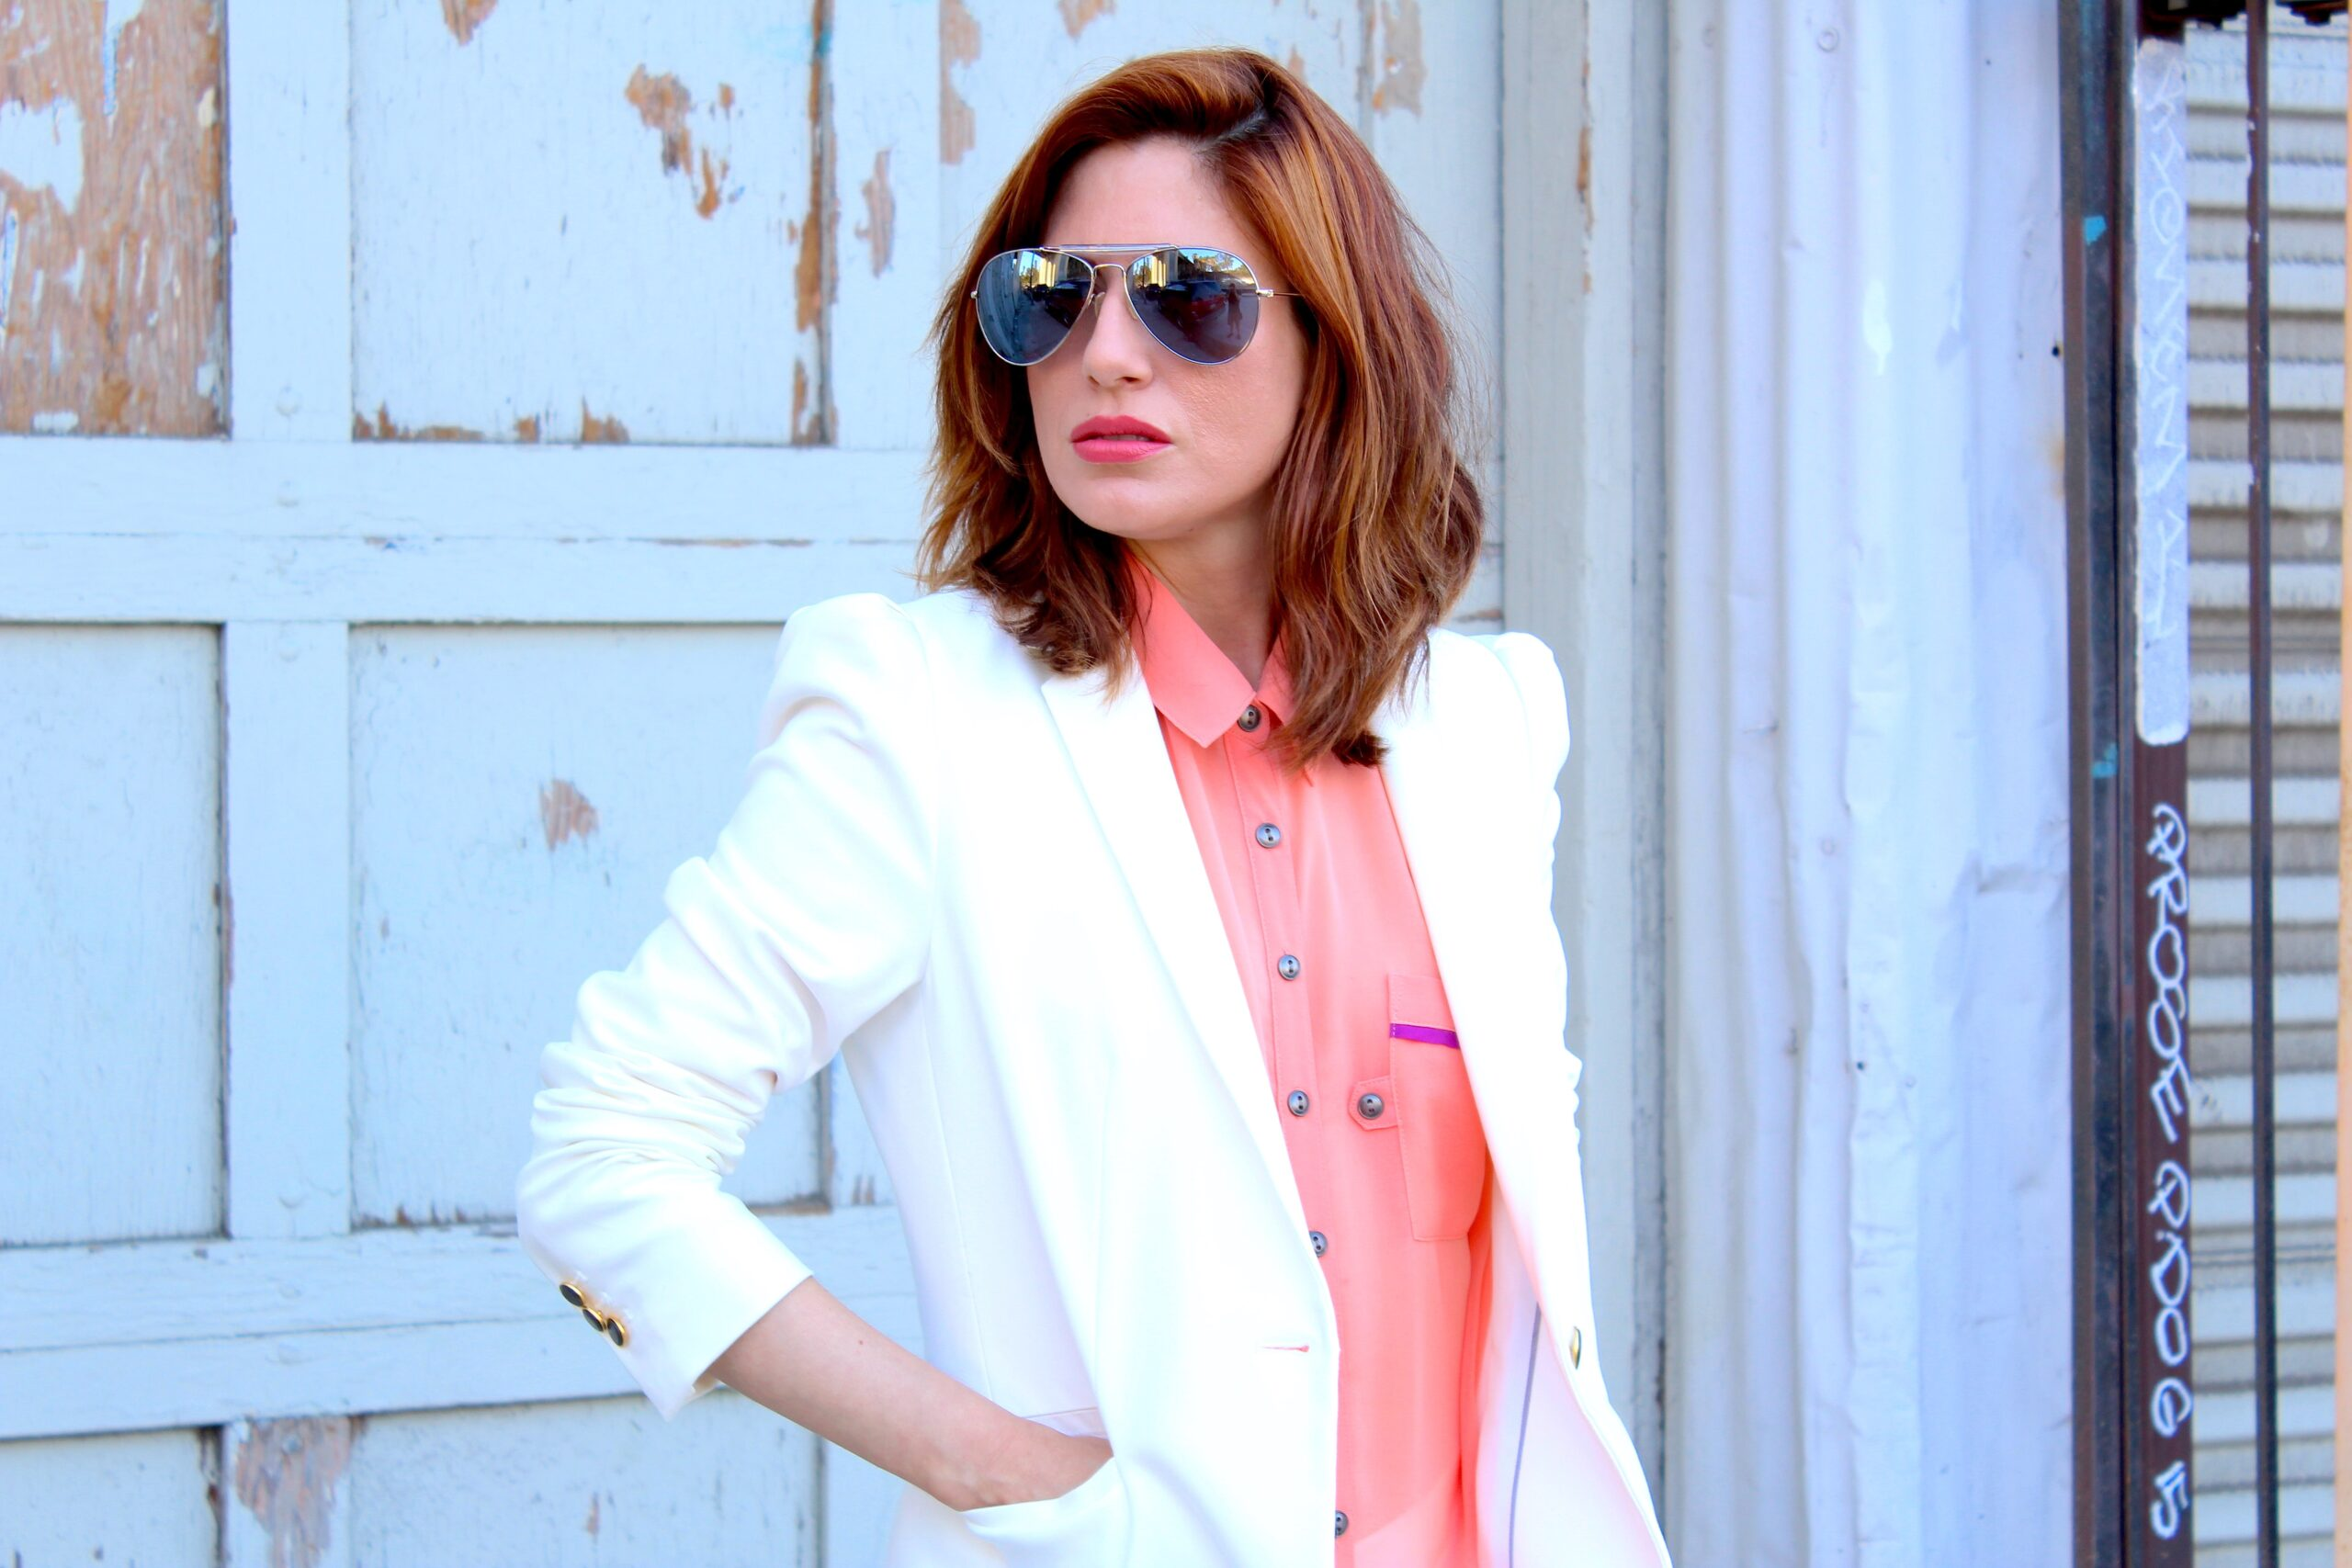 Woman wearing a Miami Vice inspired outfit